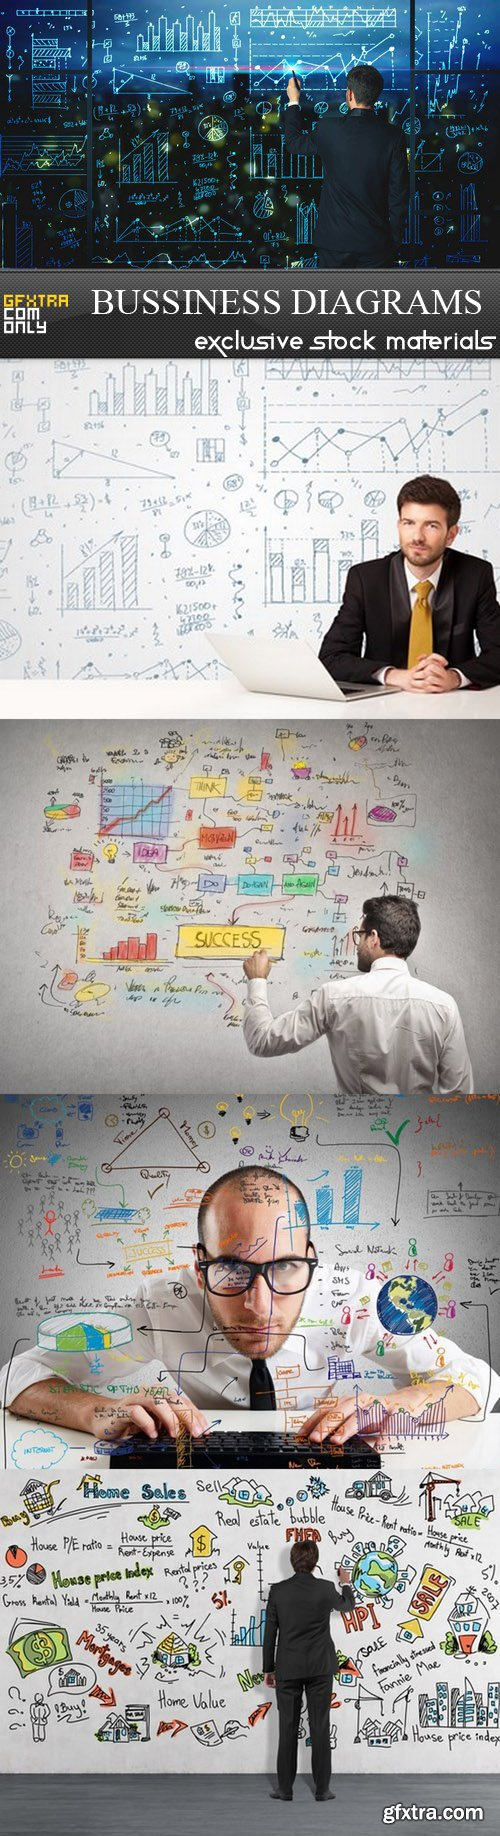 Bussiness Diagrams